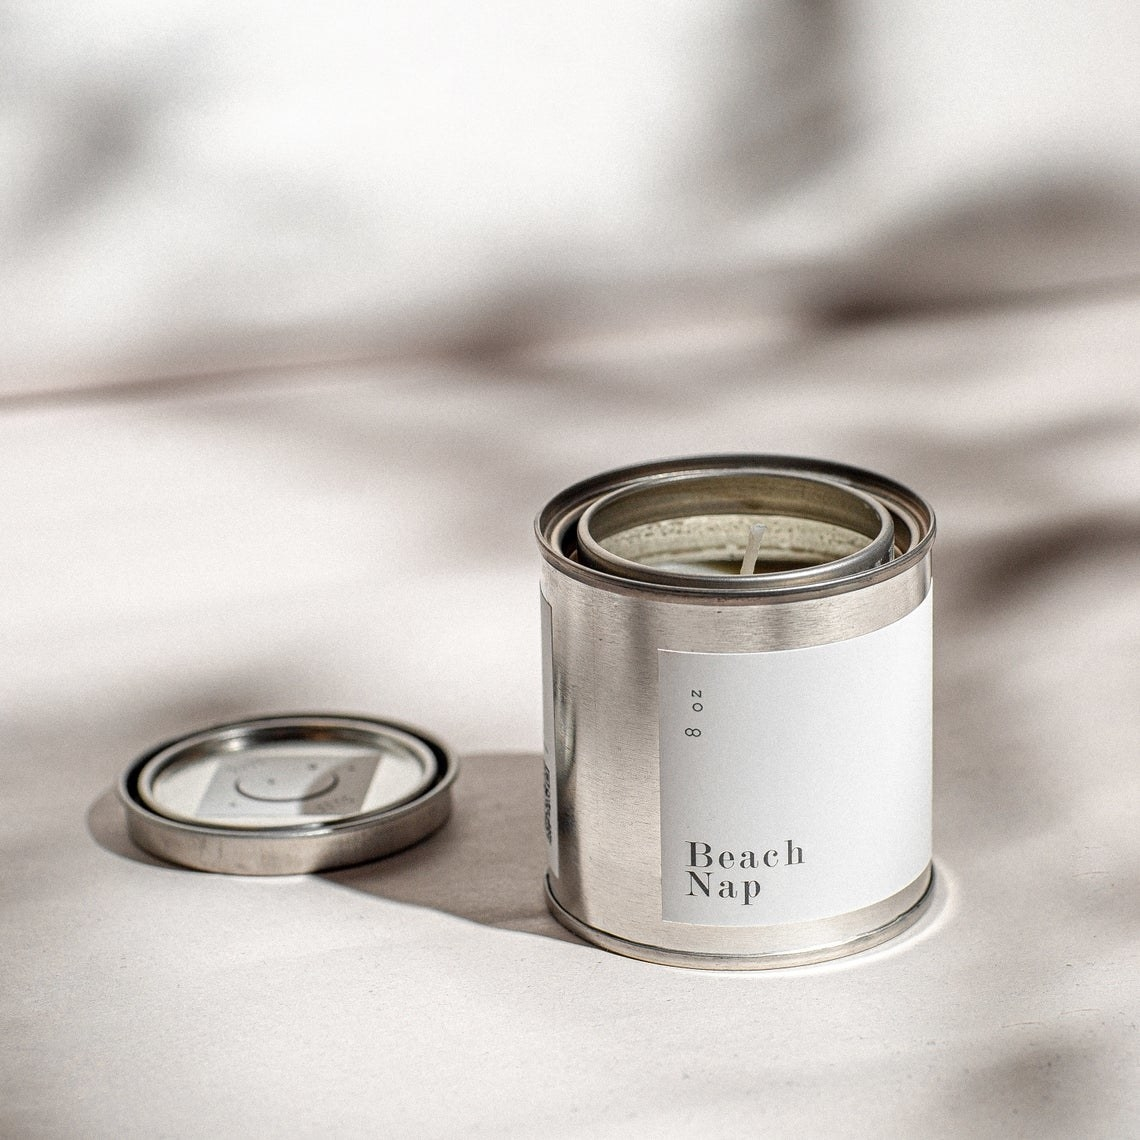 A product shot of the candle with a clean, minimalist label inside a tin container